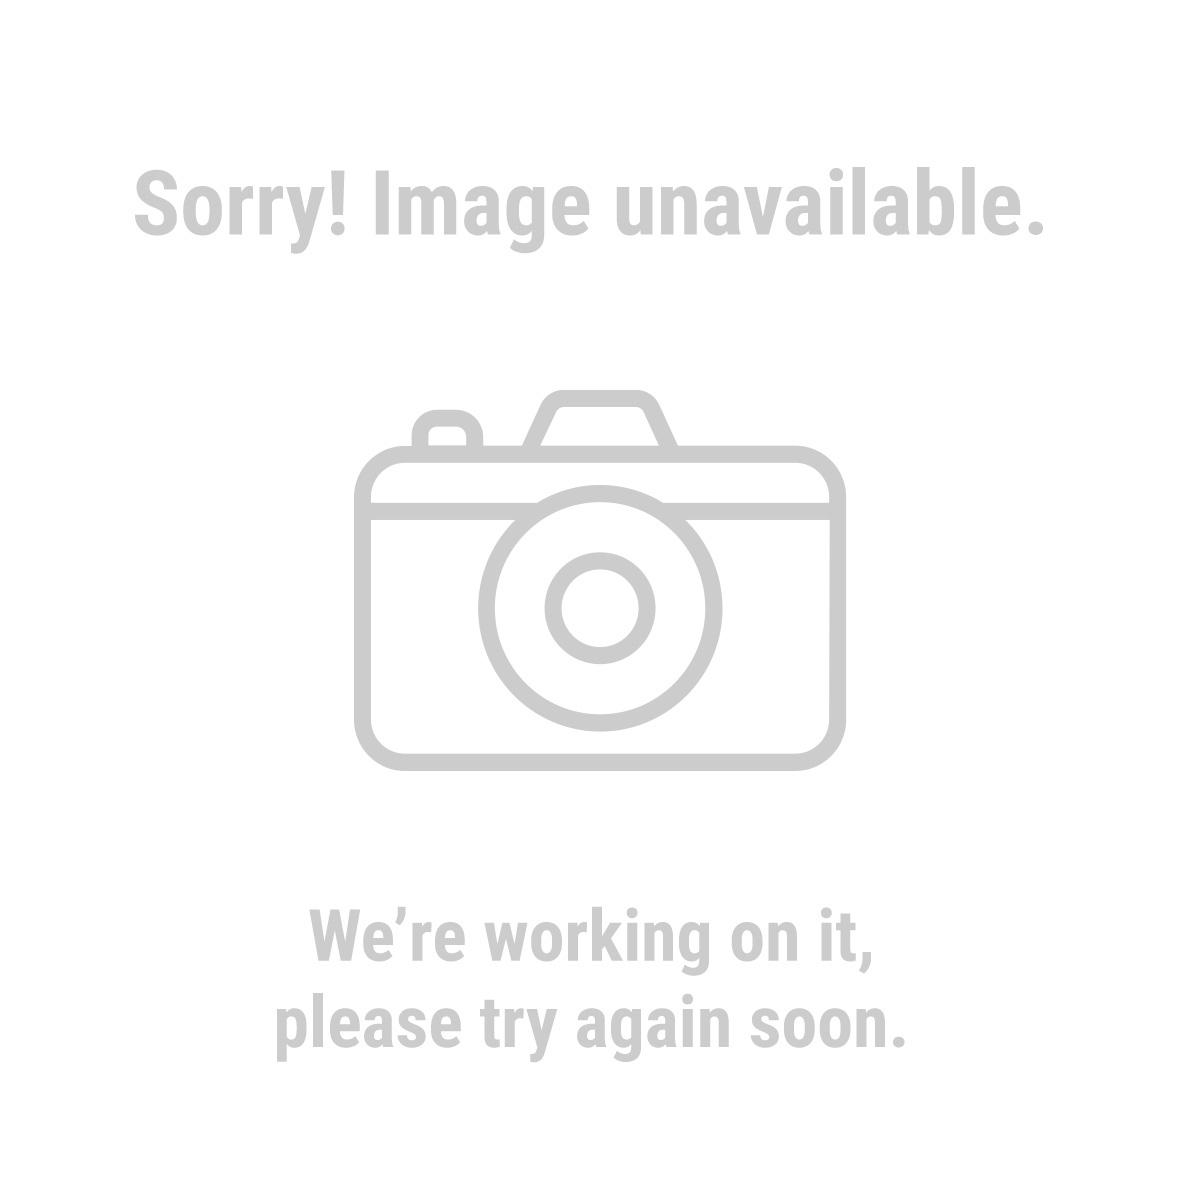 HFT 61571 1470 ft. x 18 in. Roll High Performance Stretch Wrap